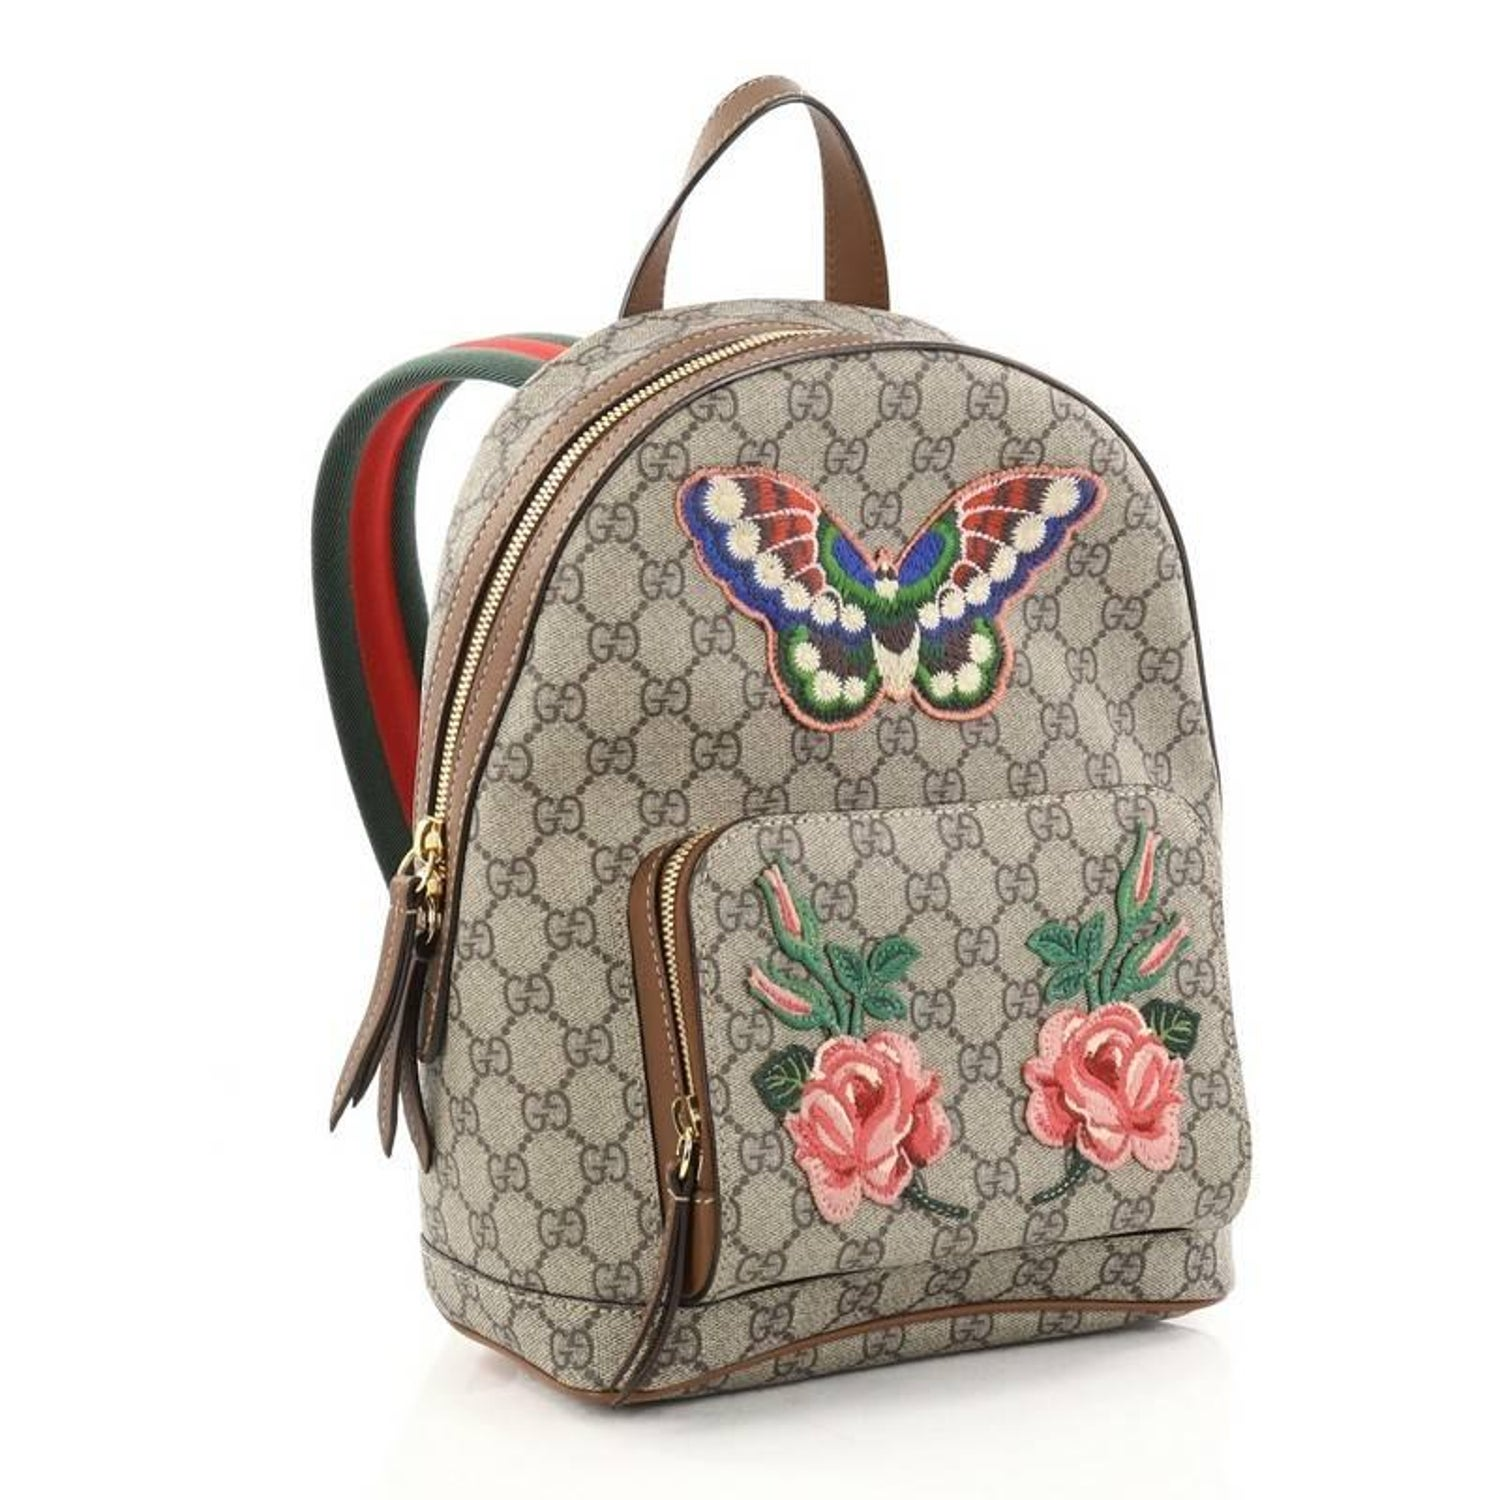 Gucci Zip Pocket Backpack Embroidered GG Coated Canvas Small at 1stdibs